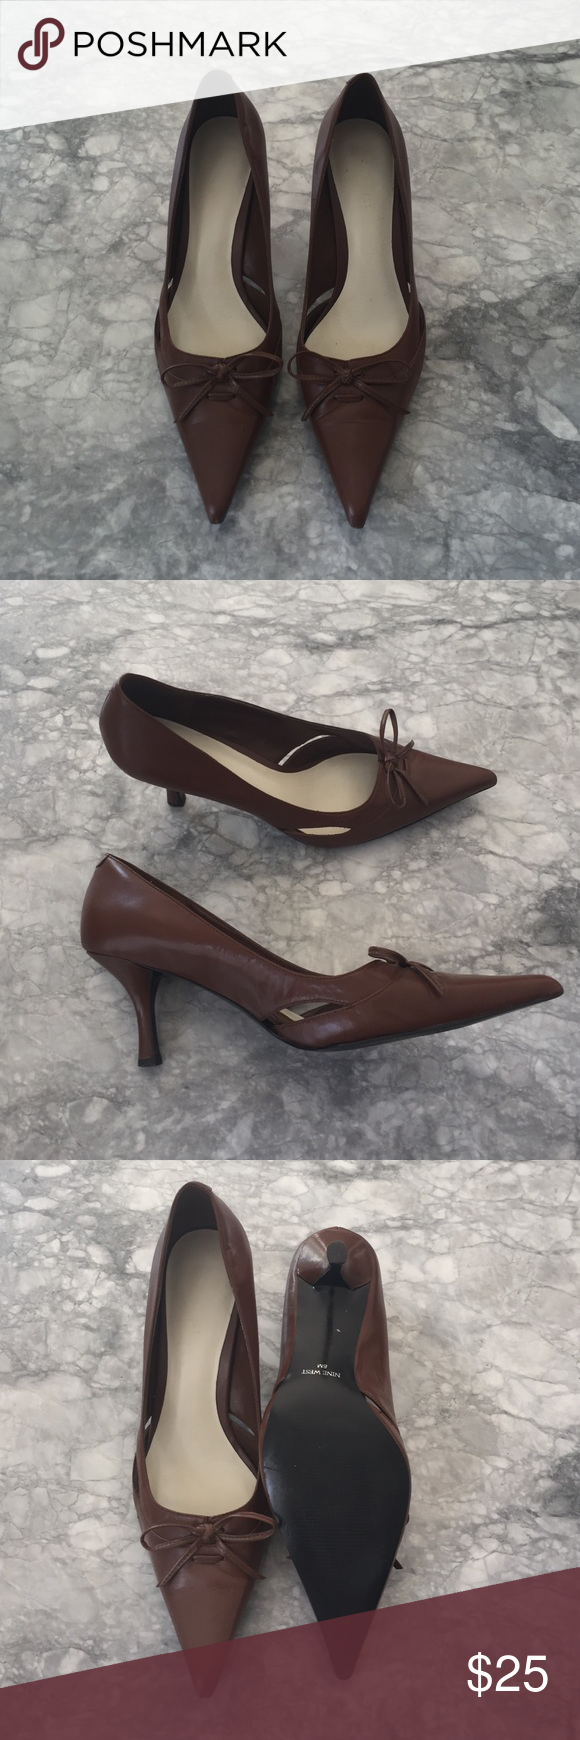 brown Nine West pump brown Nine West pump with bow and cut out detail. gently worn. size 8 with a 2.5 inch heel. super comfortable! Nine West Shoes Heels